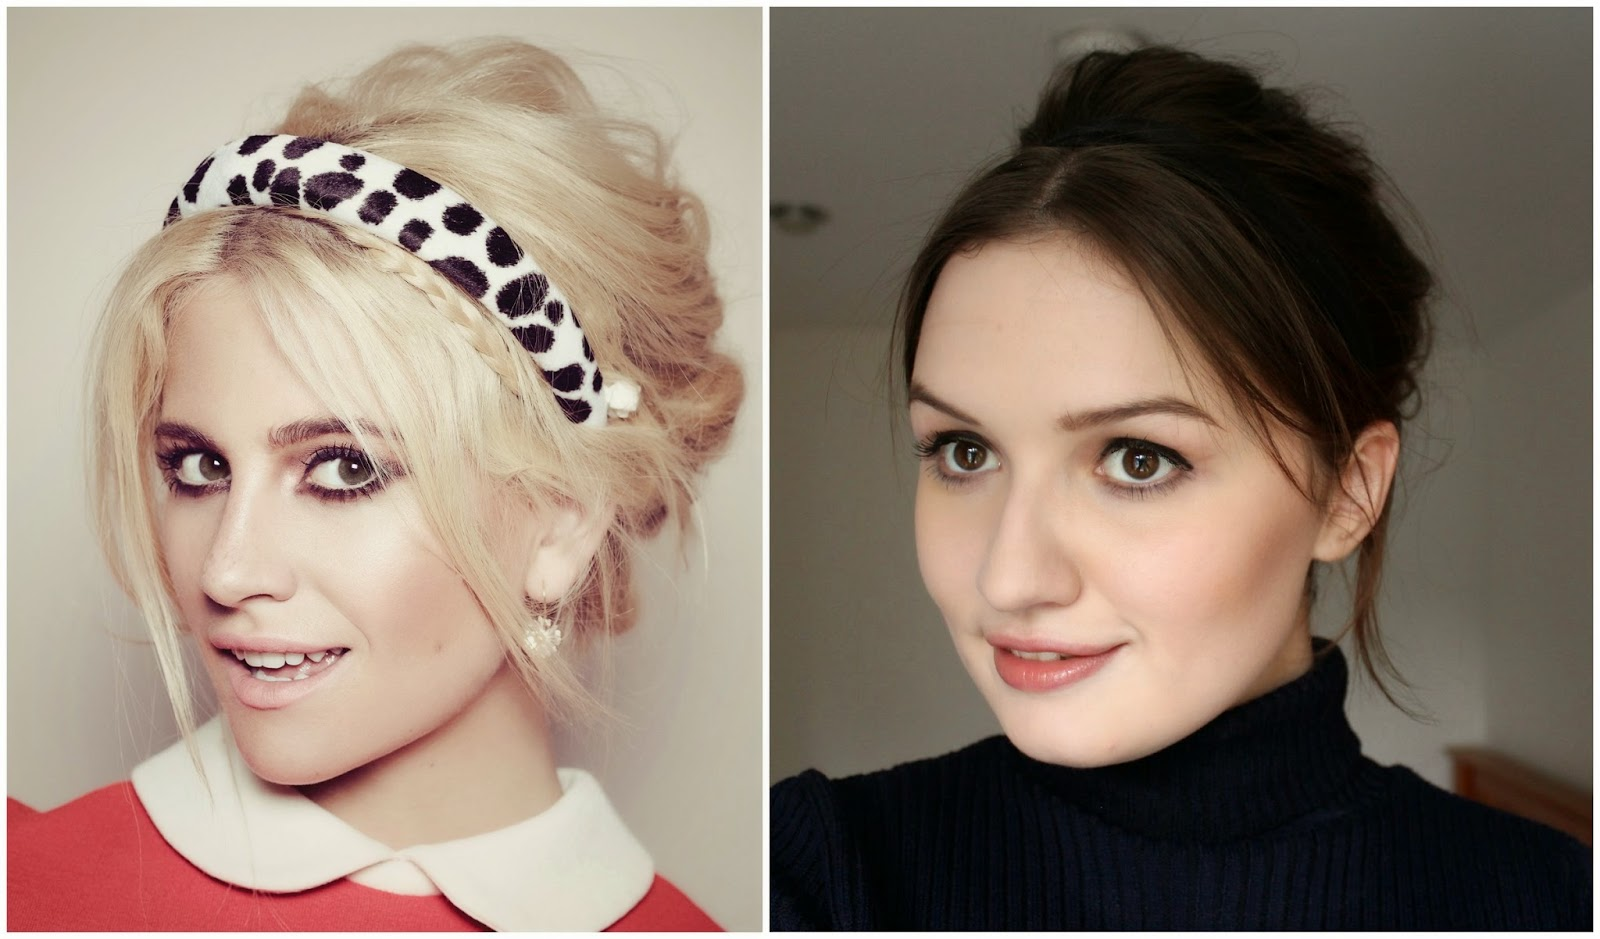 pixie lott beauty bloggers bblogger bloggers make up mascara eyeliner winged liner sixties get the look tutorial oliver cheshire instagram fashion lifestyle blog bloglovin